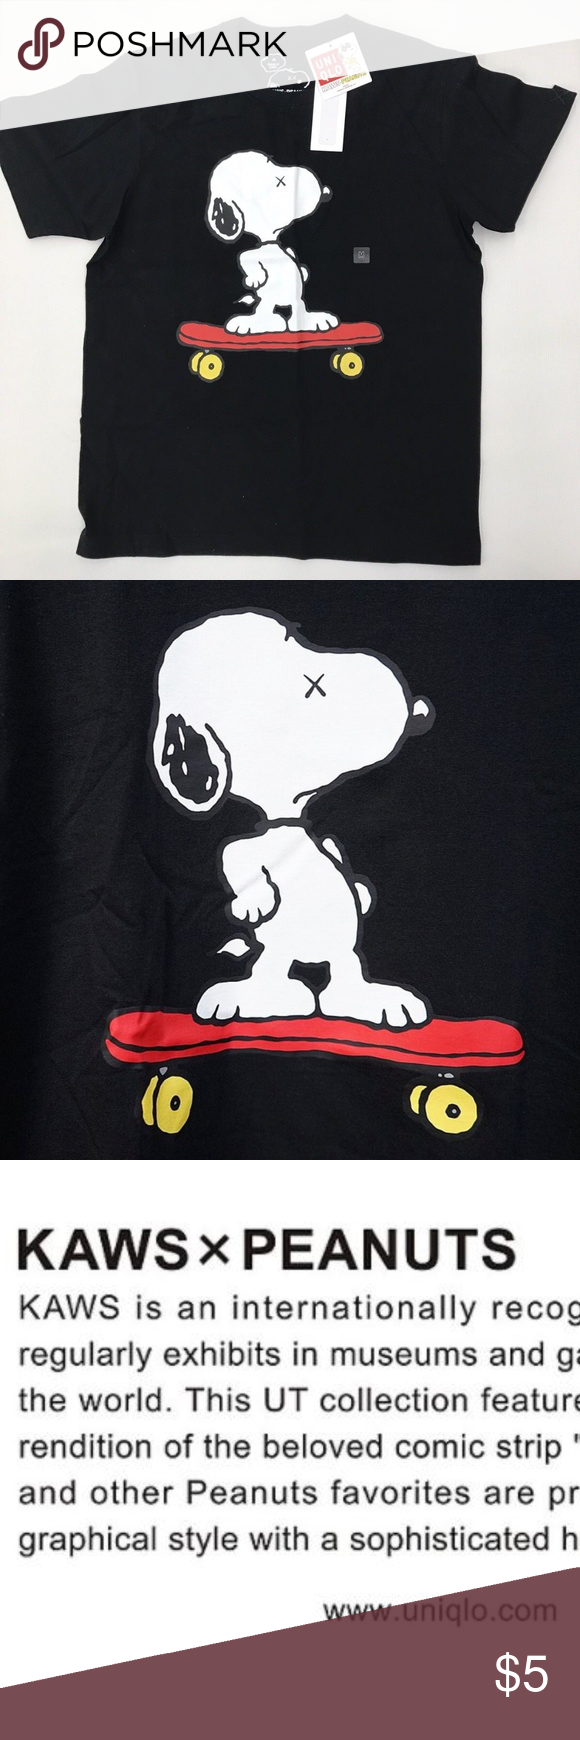 be7b7cace9f9dc Kaws x Peanuts Uniqlo Black Snoopy Tshirt - Smoke Free Home - Brand New  with Tags - Never Worn - Uniqlo - KAWS X PEANUTS Uniqlo x KAWS Shirts Tees  - Short ...